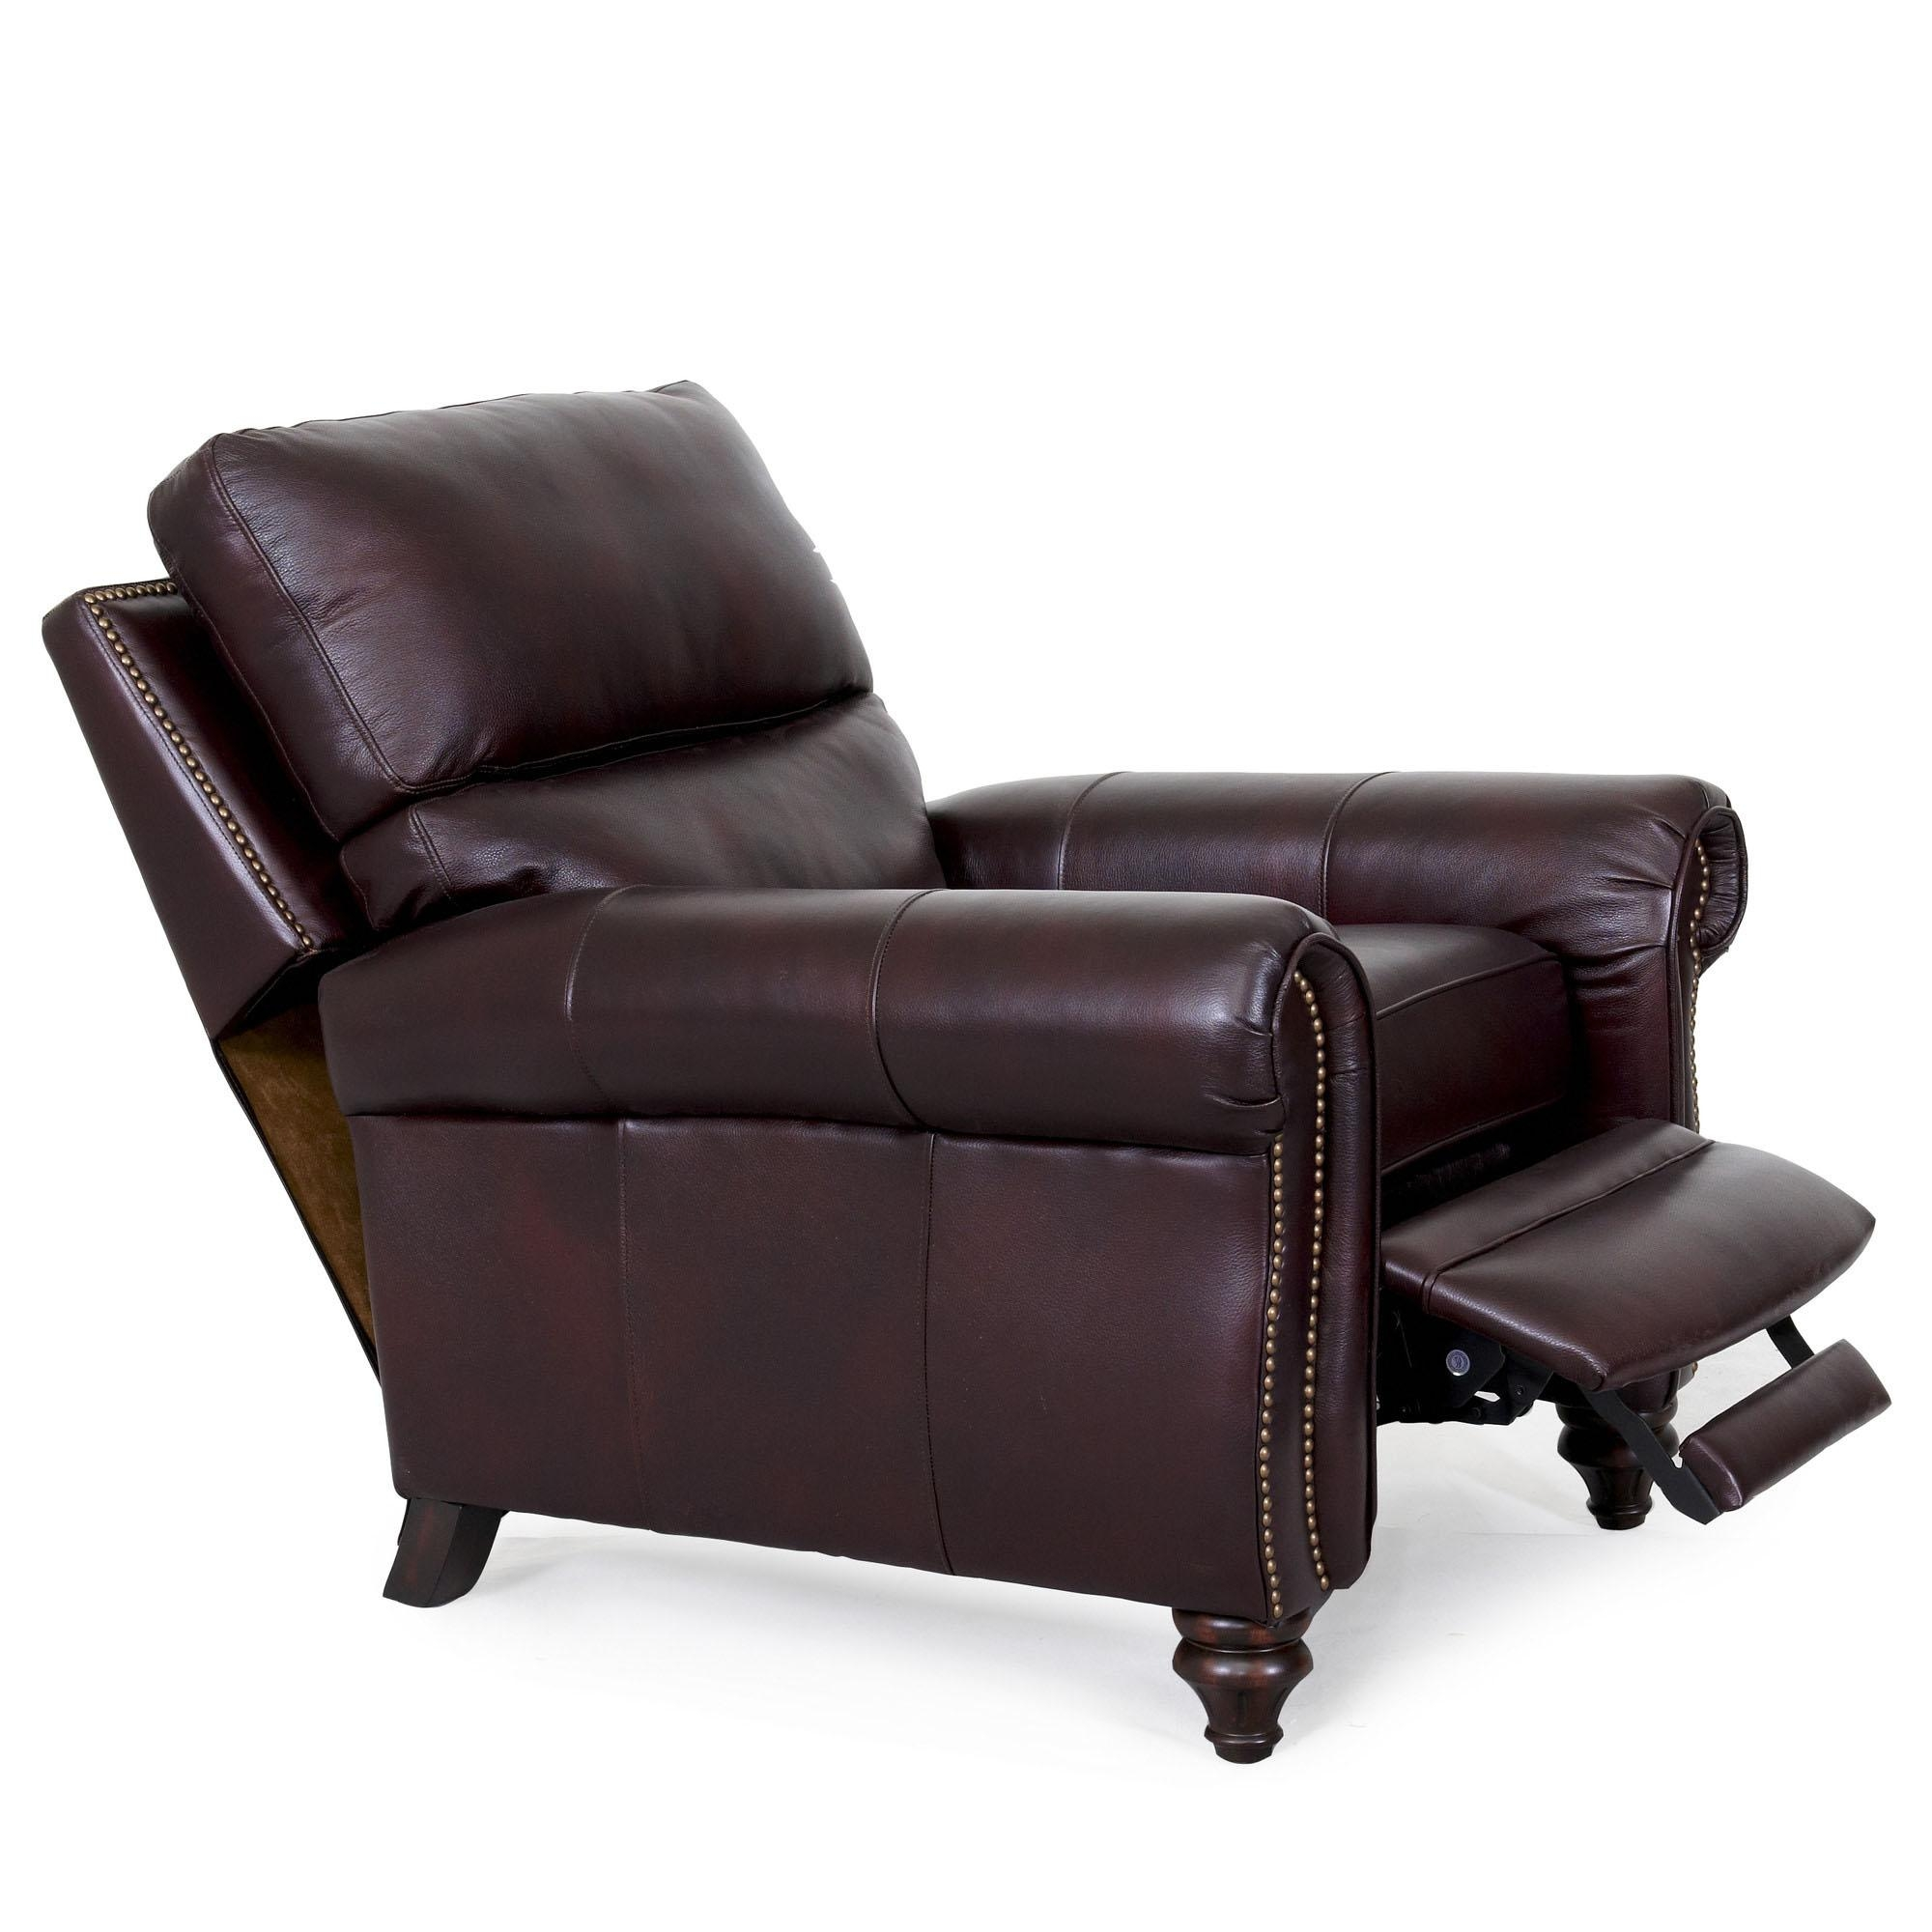 Barcalounger Dalton Ii Recliner Chair – Leather Recliner Chair Throughout Barcalounger Sofas (Photo 15 of 20)